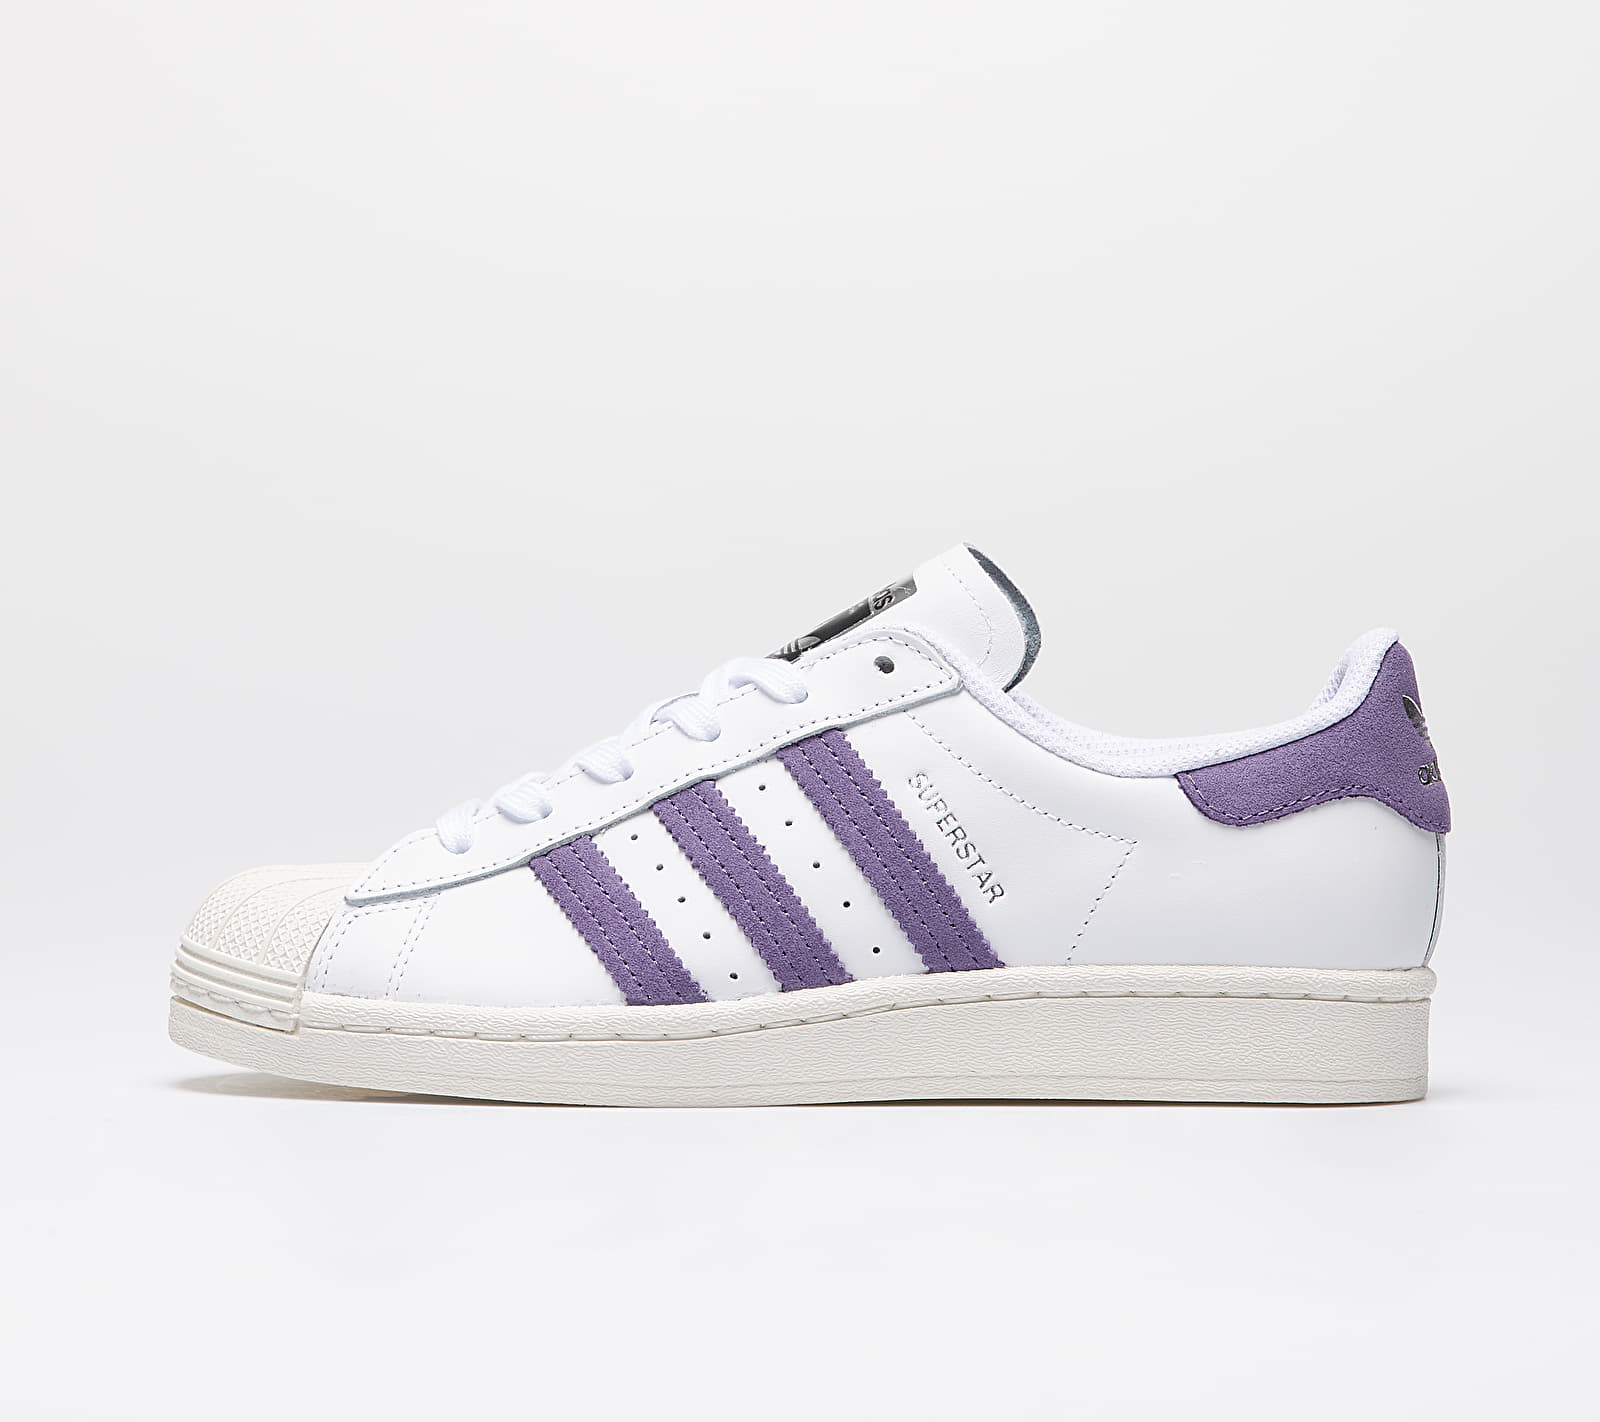 adidas Superstar W Ftw White/ Tech Purple/ Off White EUR 38